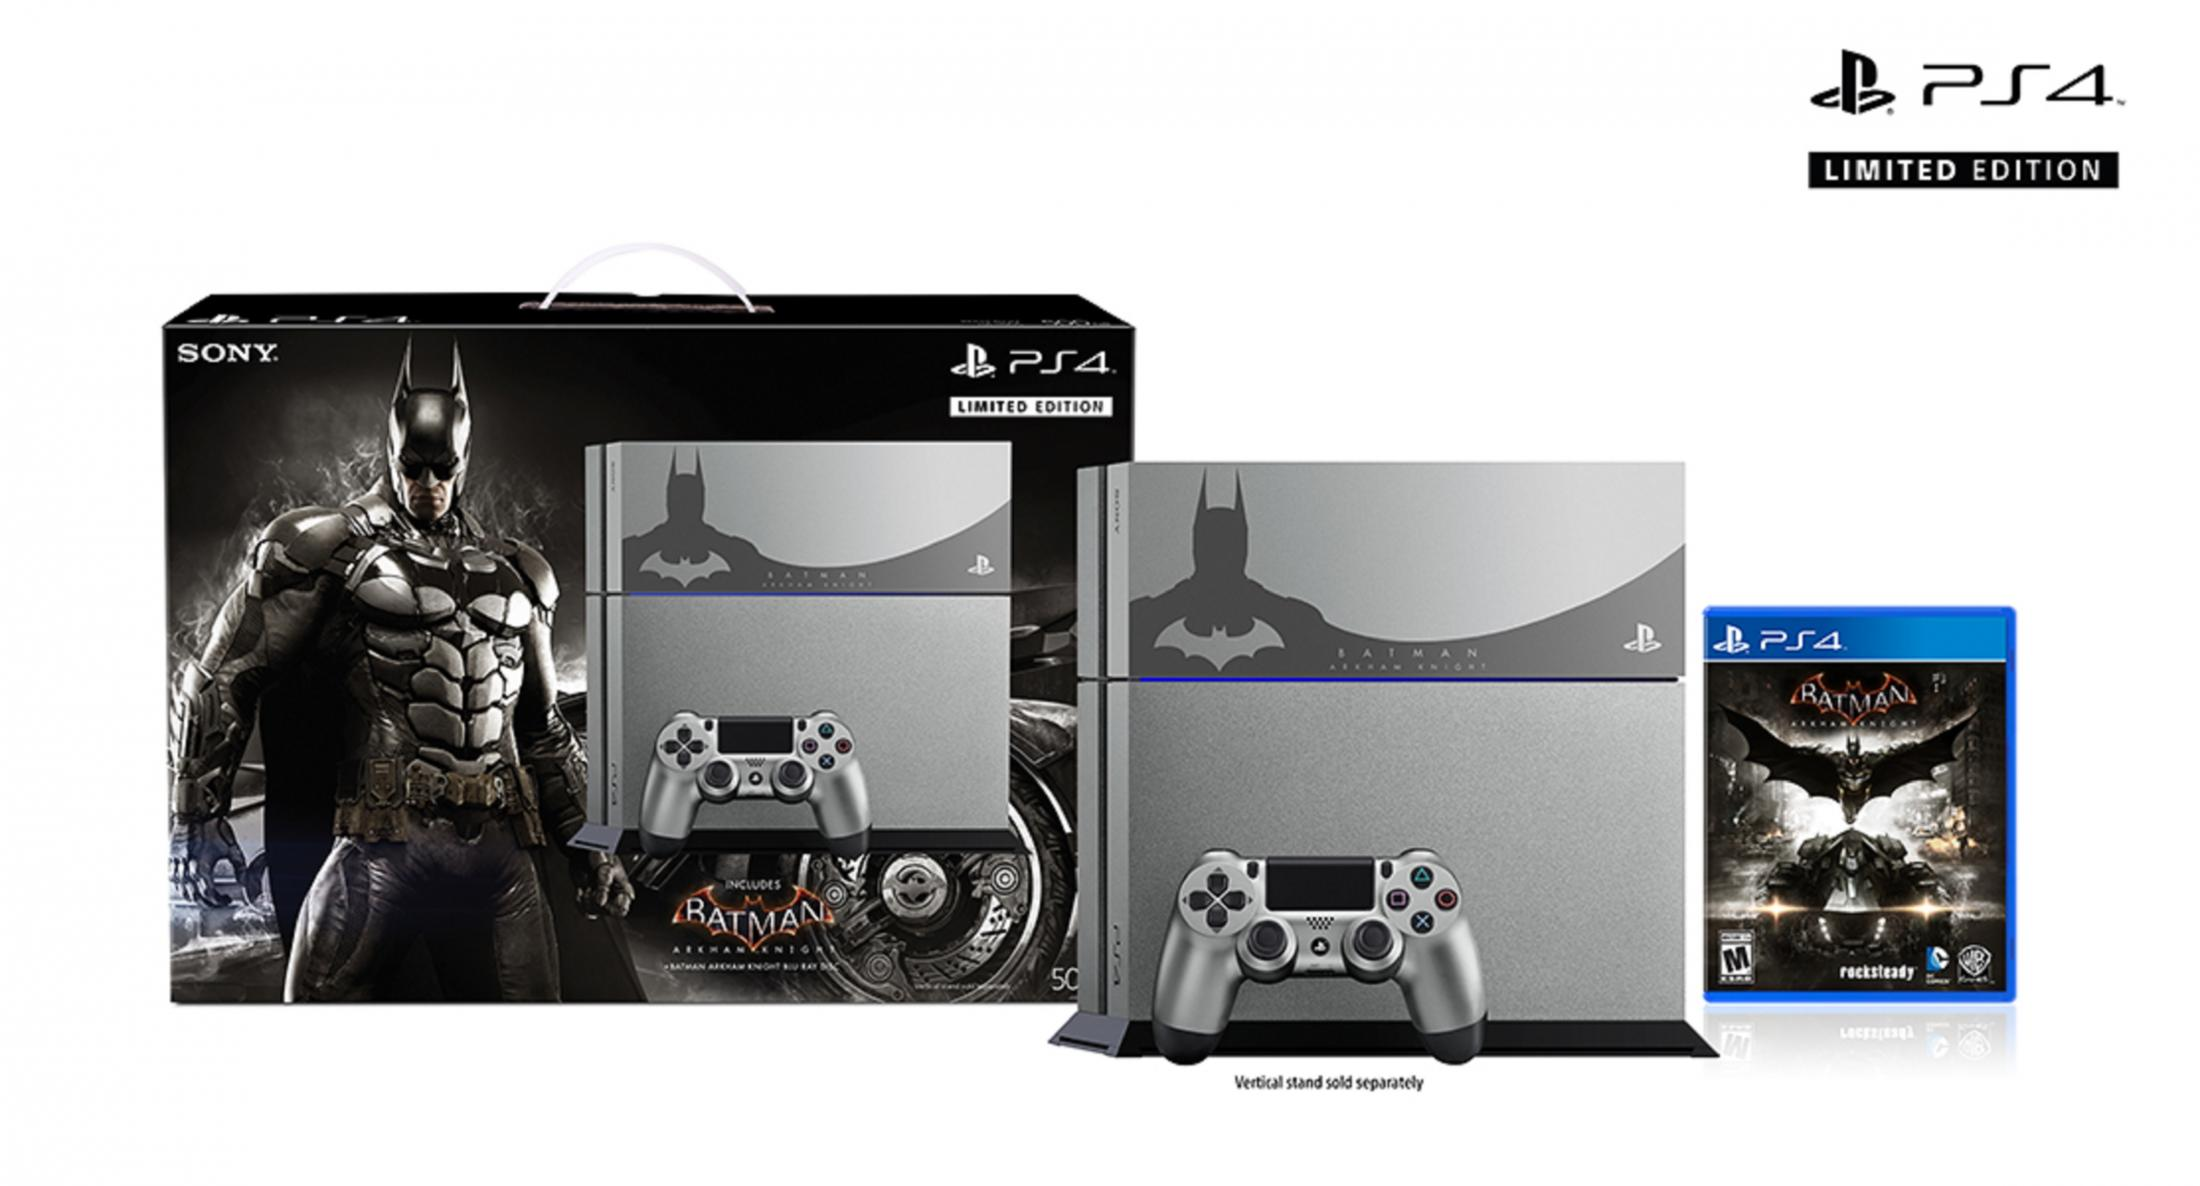 Thumbnail for Batman: Arkham Knight Limited Edition Packaging